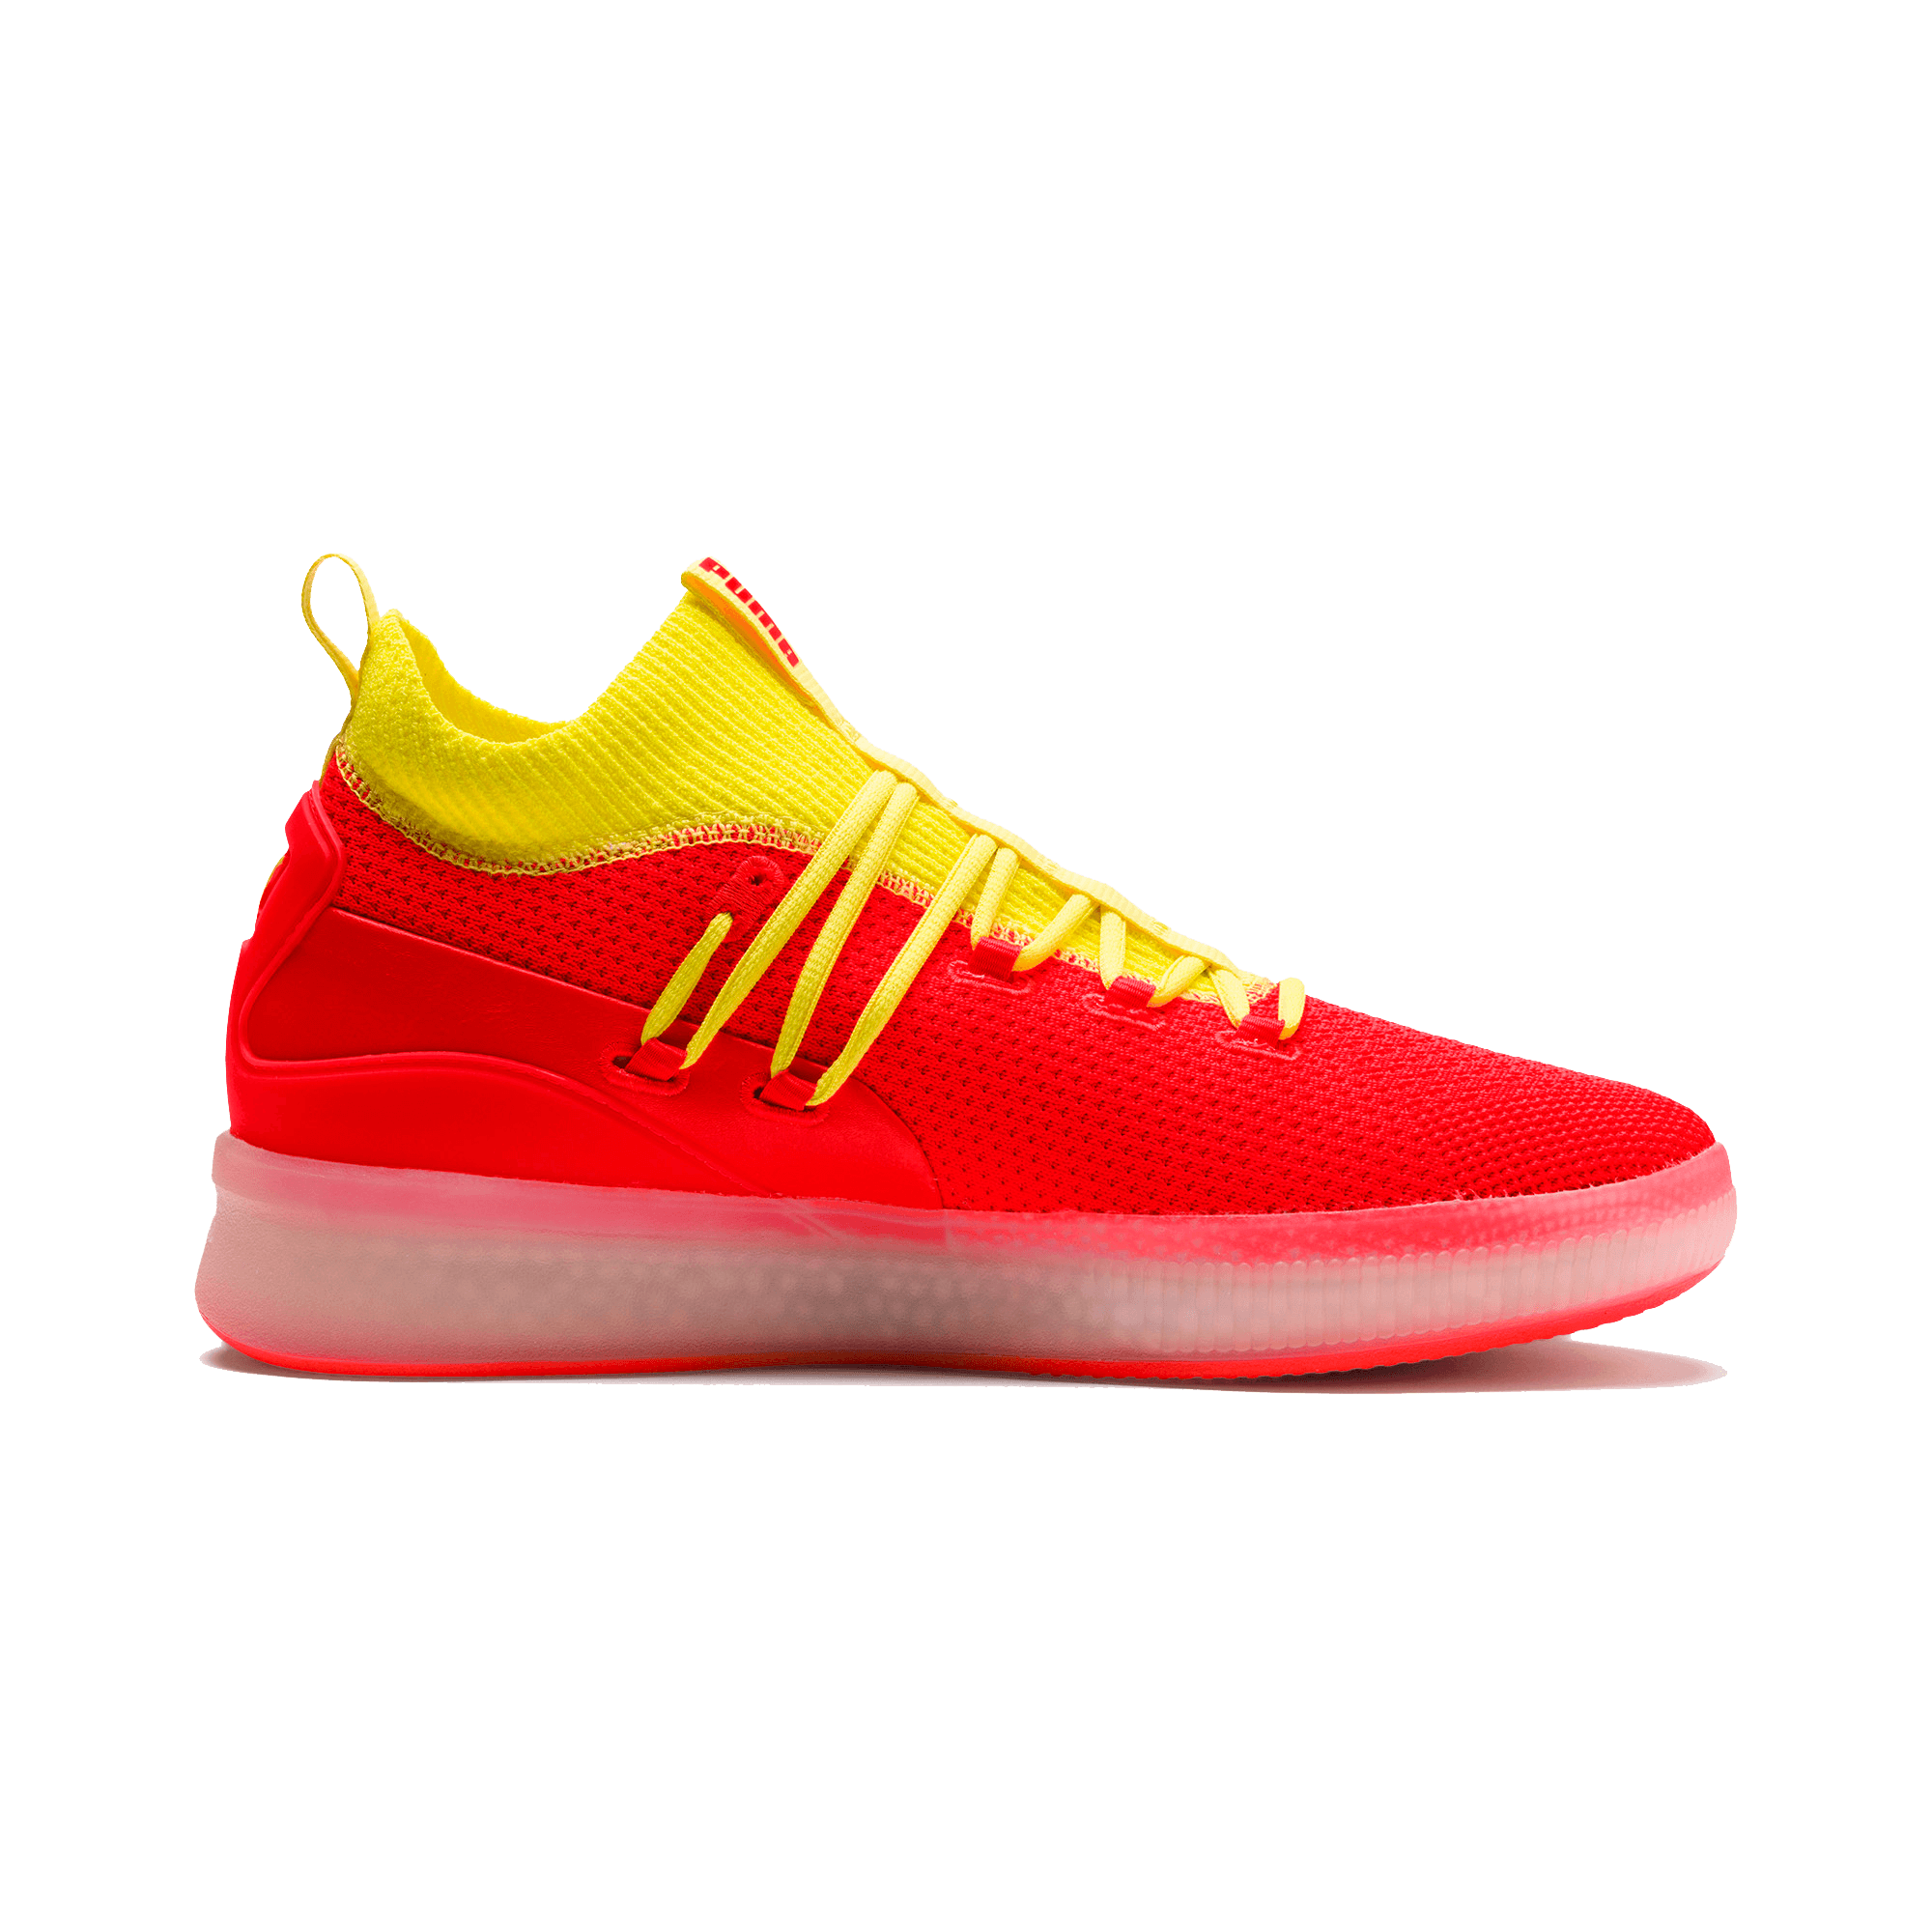 9bf6ed552335 Puma Clyde Court Disrupt Performance Review